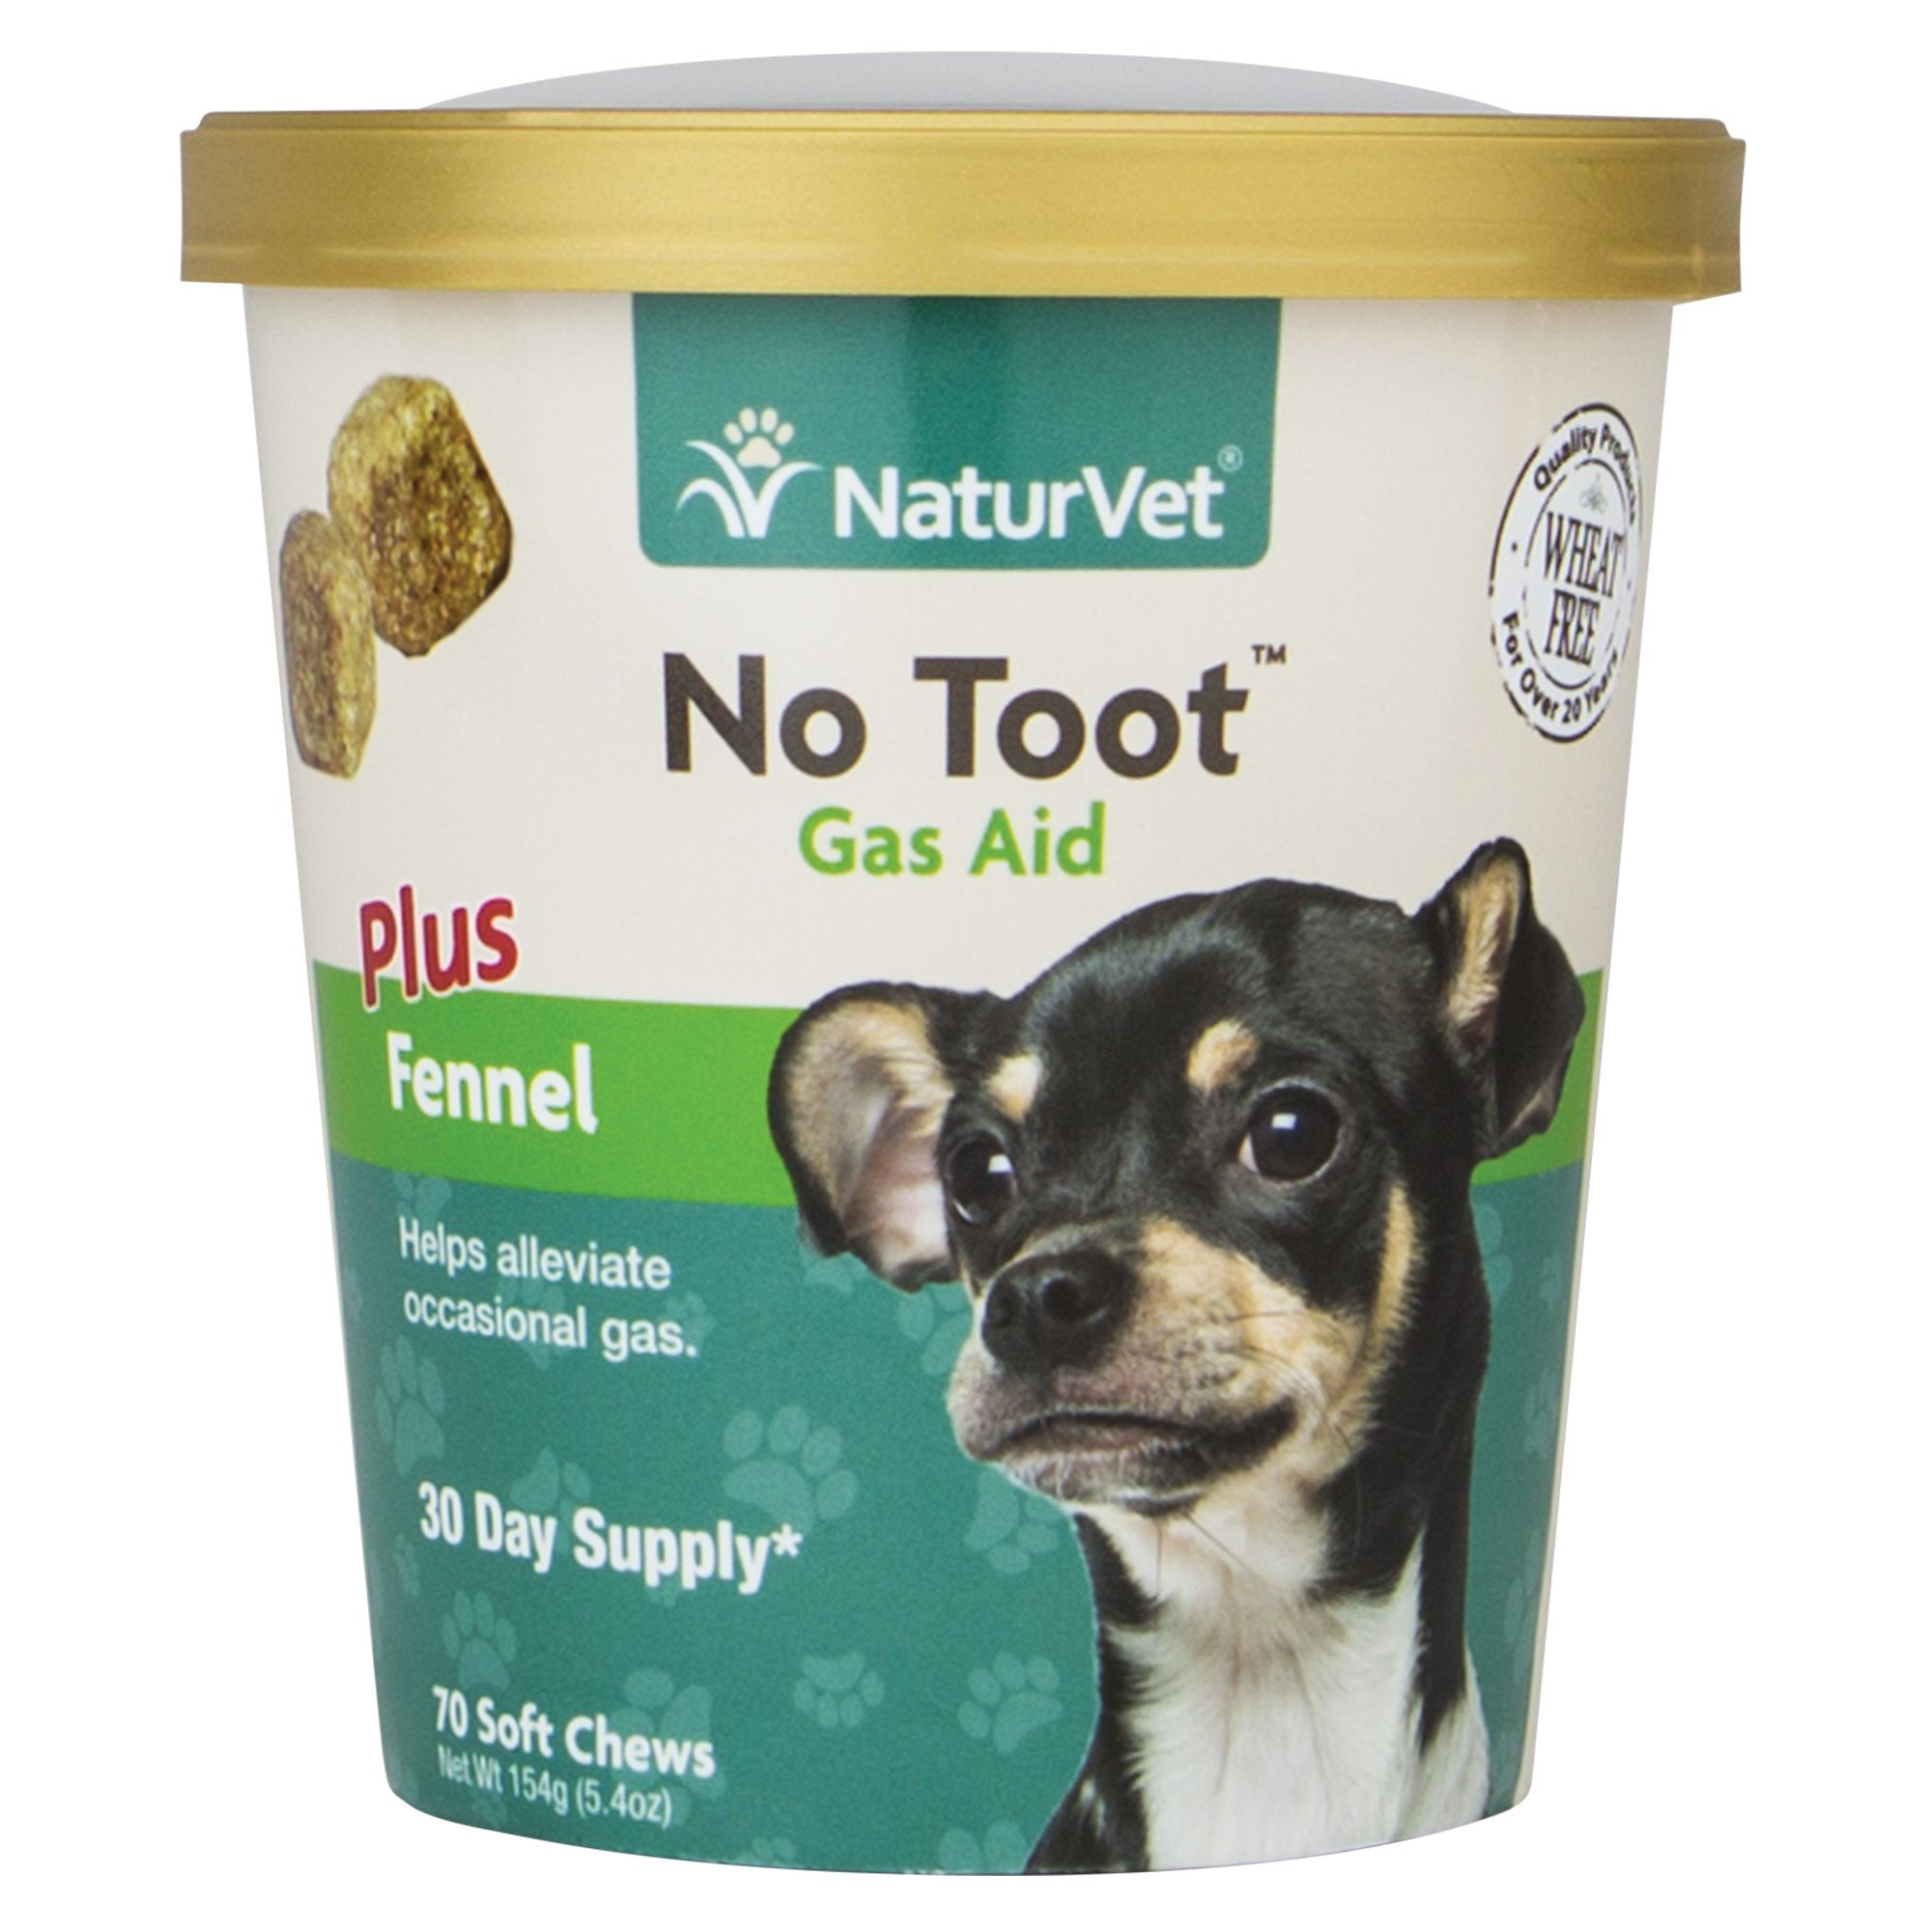 NaturVet No Toot Gas Aid Dog Soft Chews, Pack of 70 chews